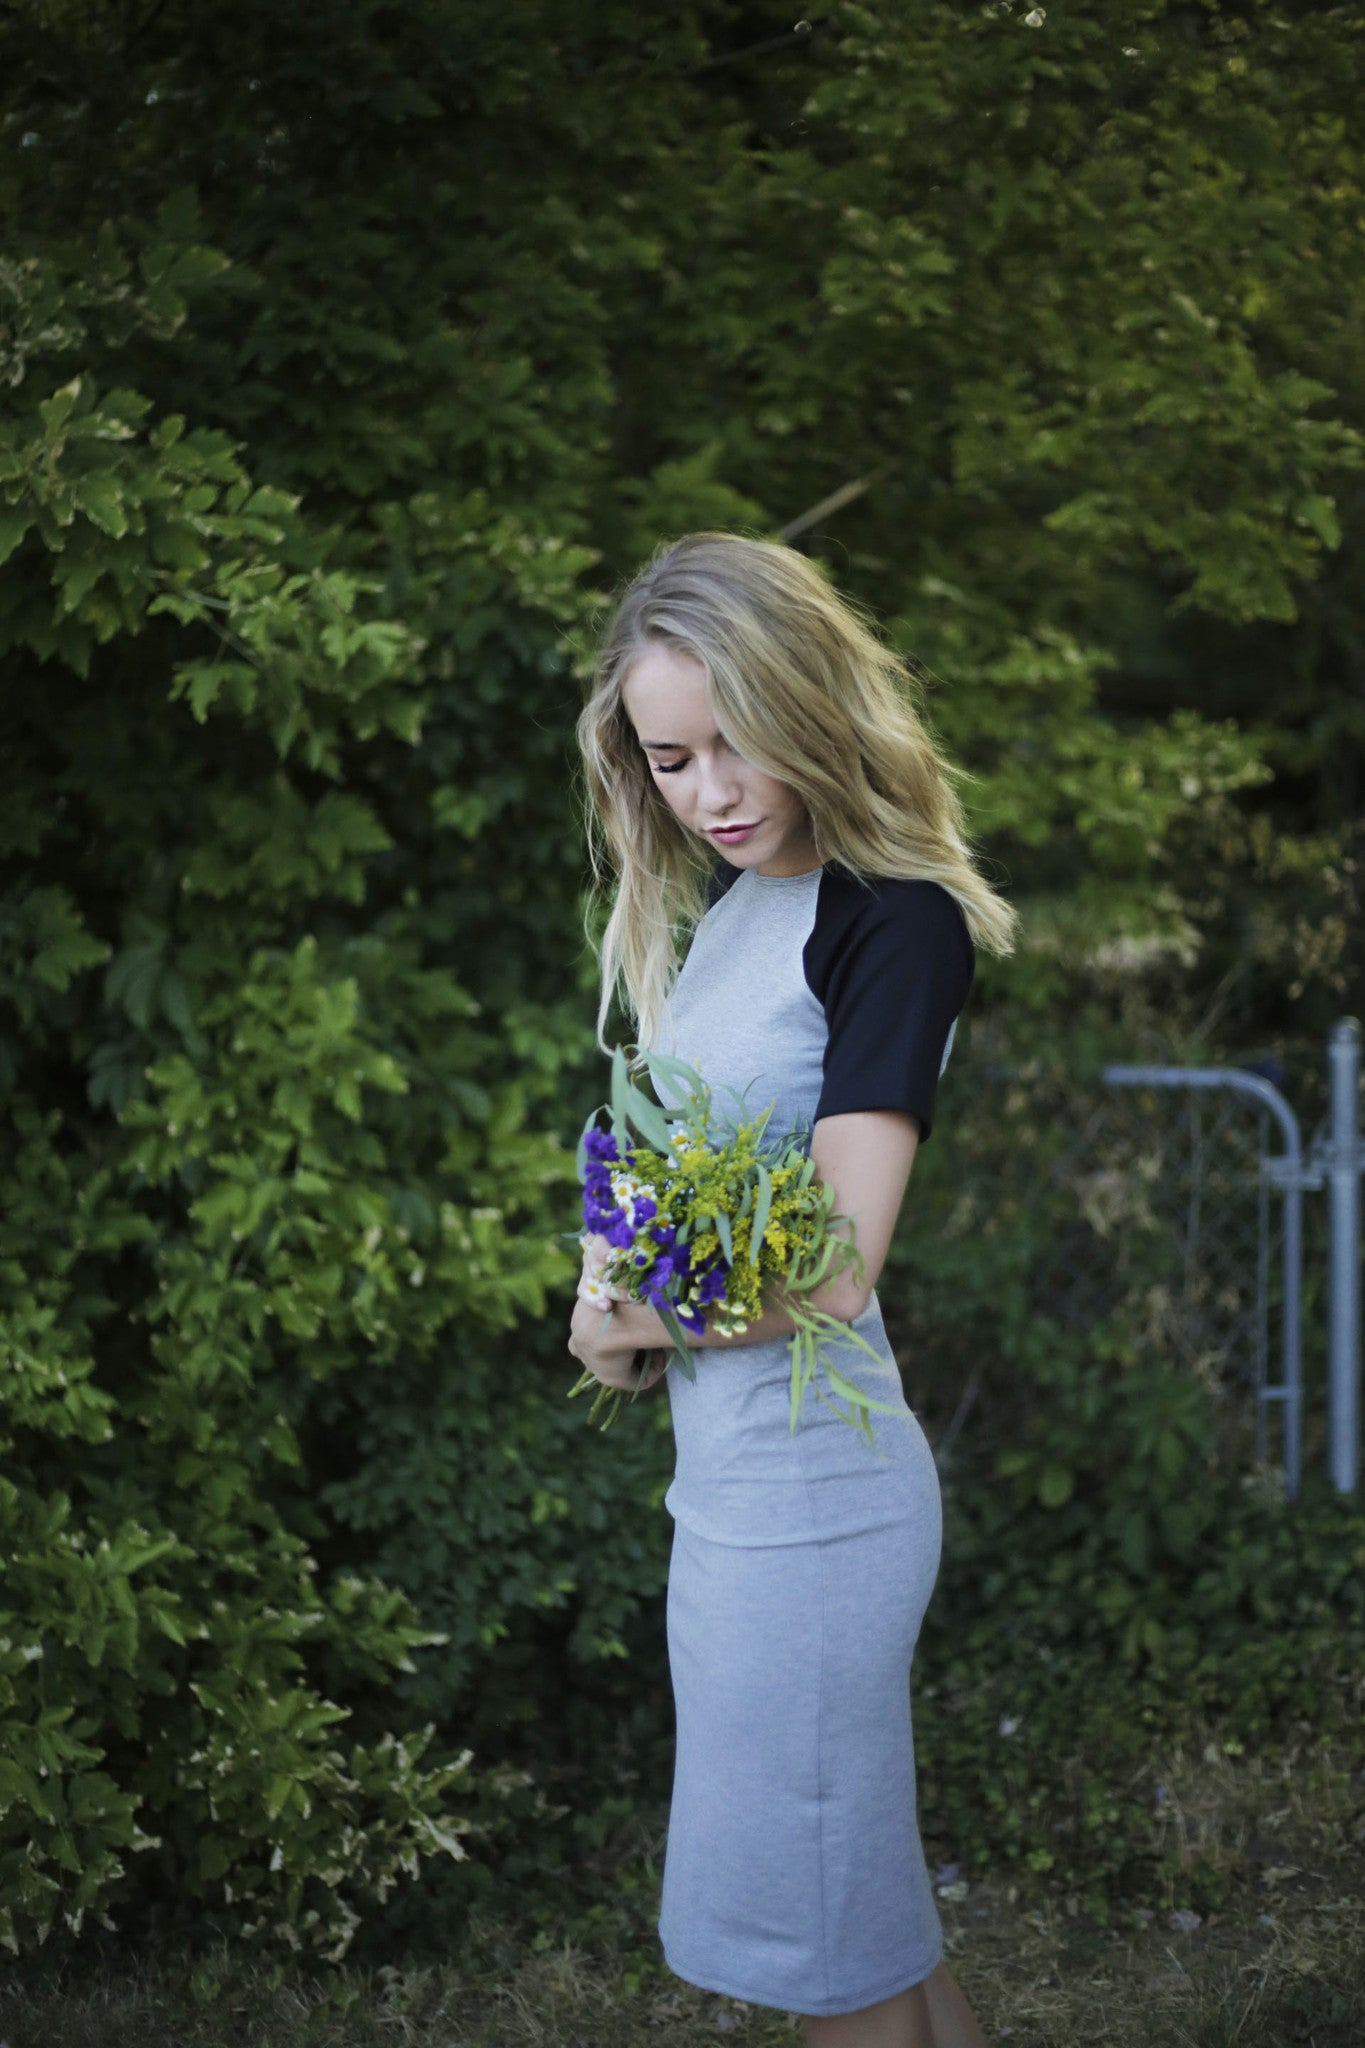 Model holding flowers and wearing charlie dress